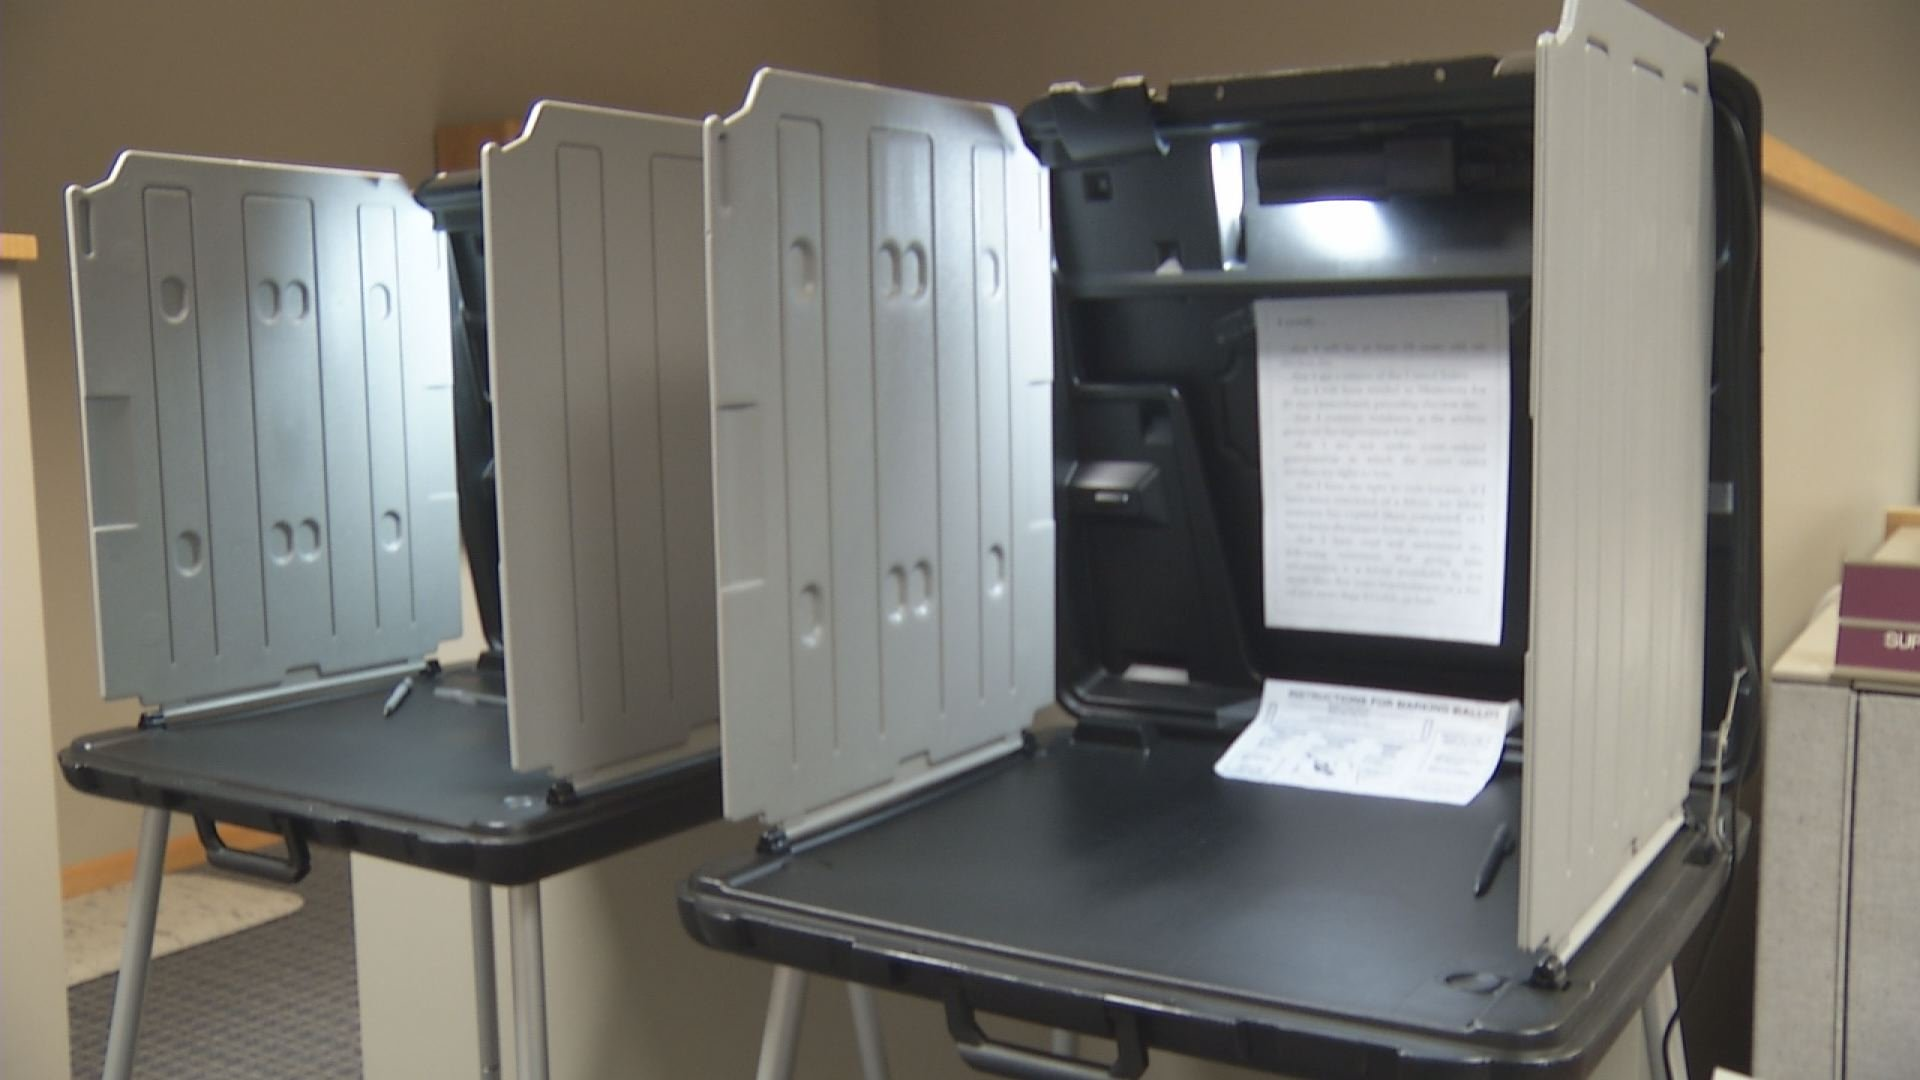 Summit County Clerk anticipates high voter turnout